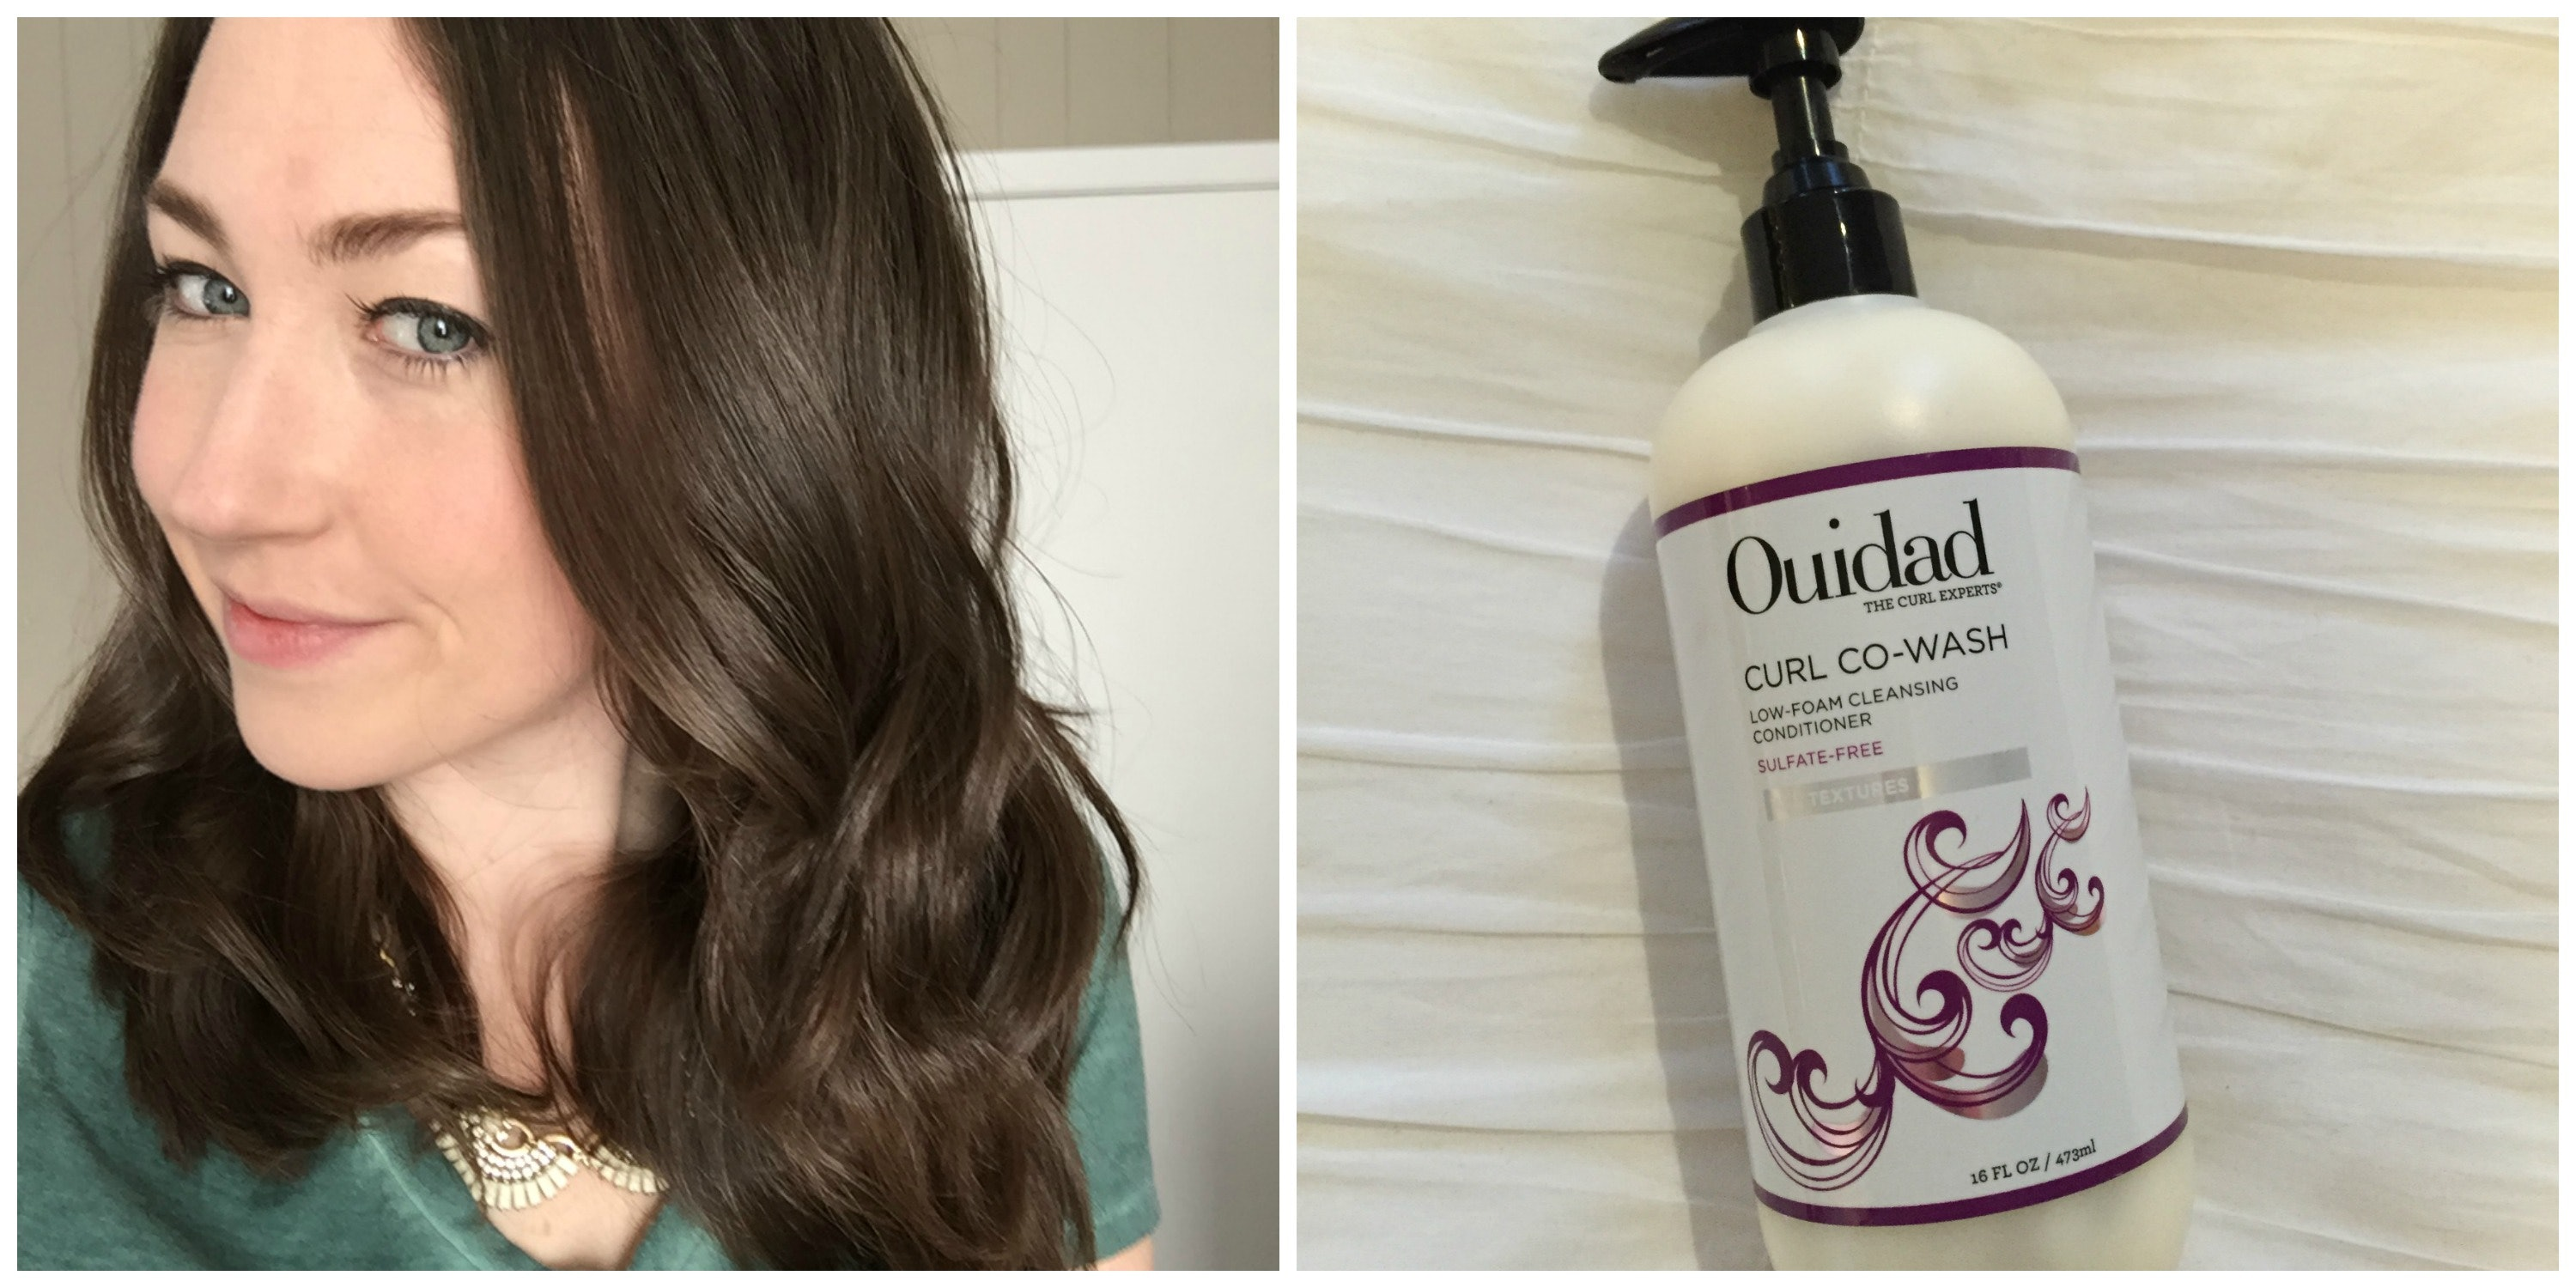 I Used Cleansing Conditioners Instead Of Shampoo For Two Weeksthis